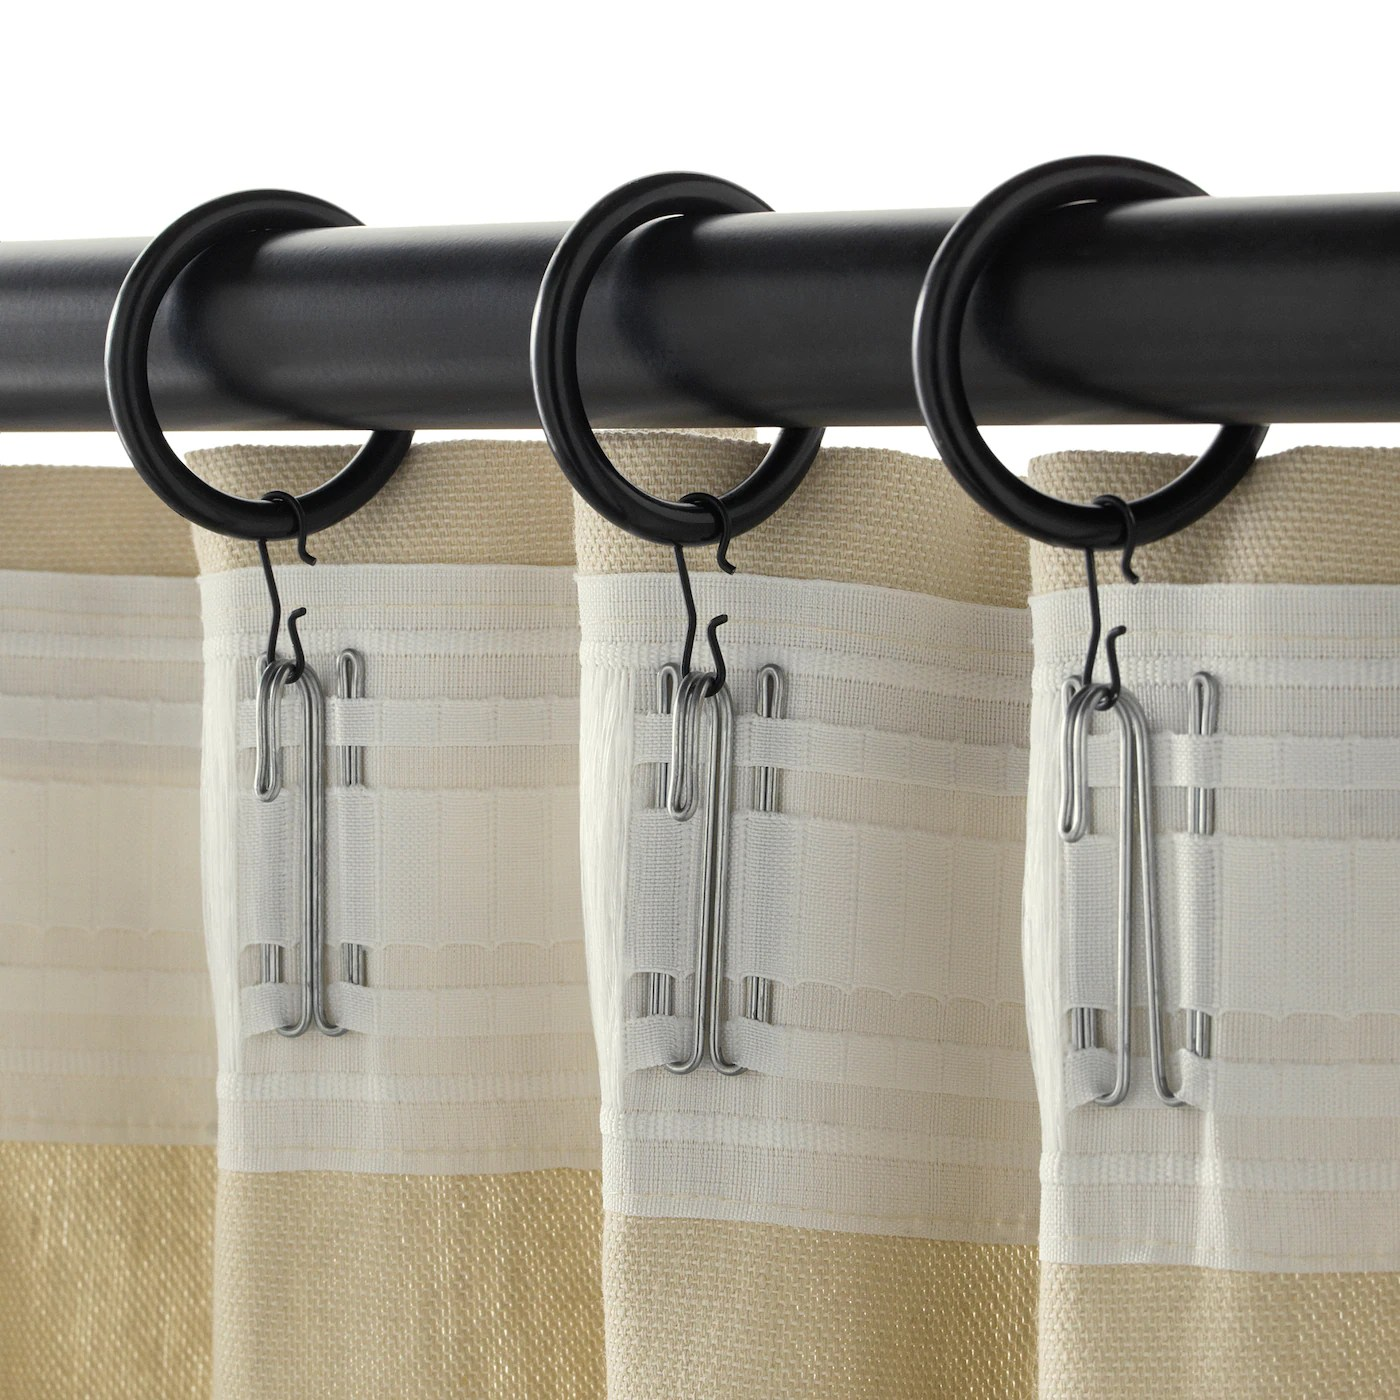 syrlig curtain ring with clip and hook black 38 mm